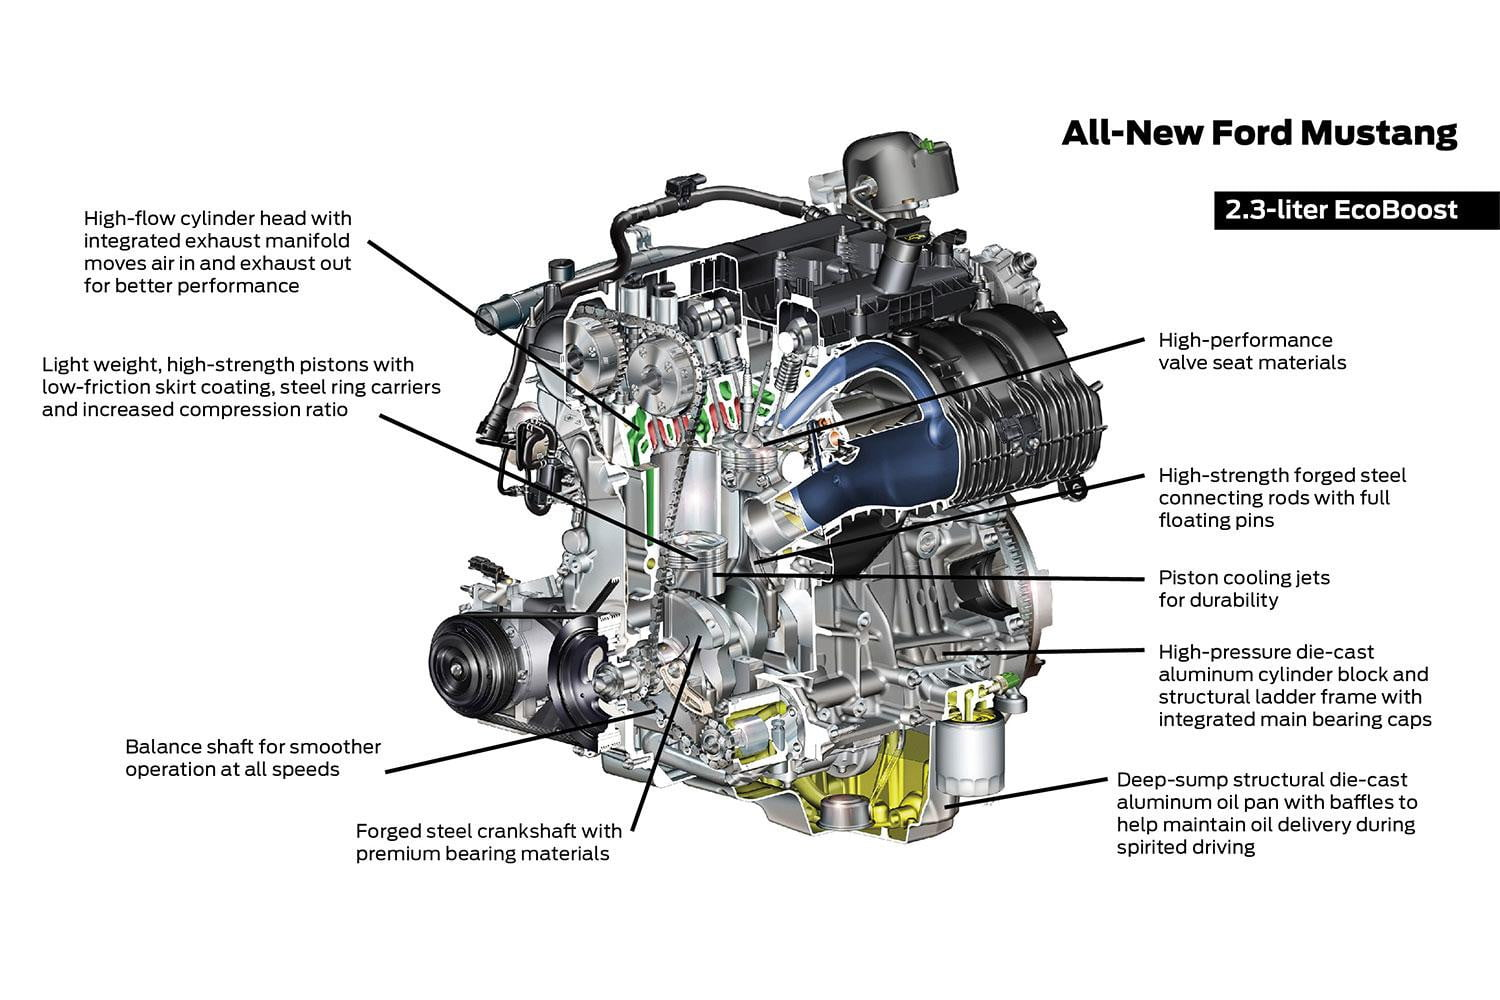 ford mustang engine specs and rumors digital trends 2015 ford mustang 2 3 liter ecoboost